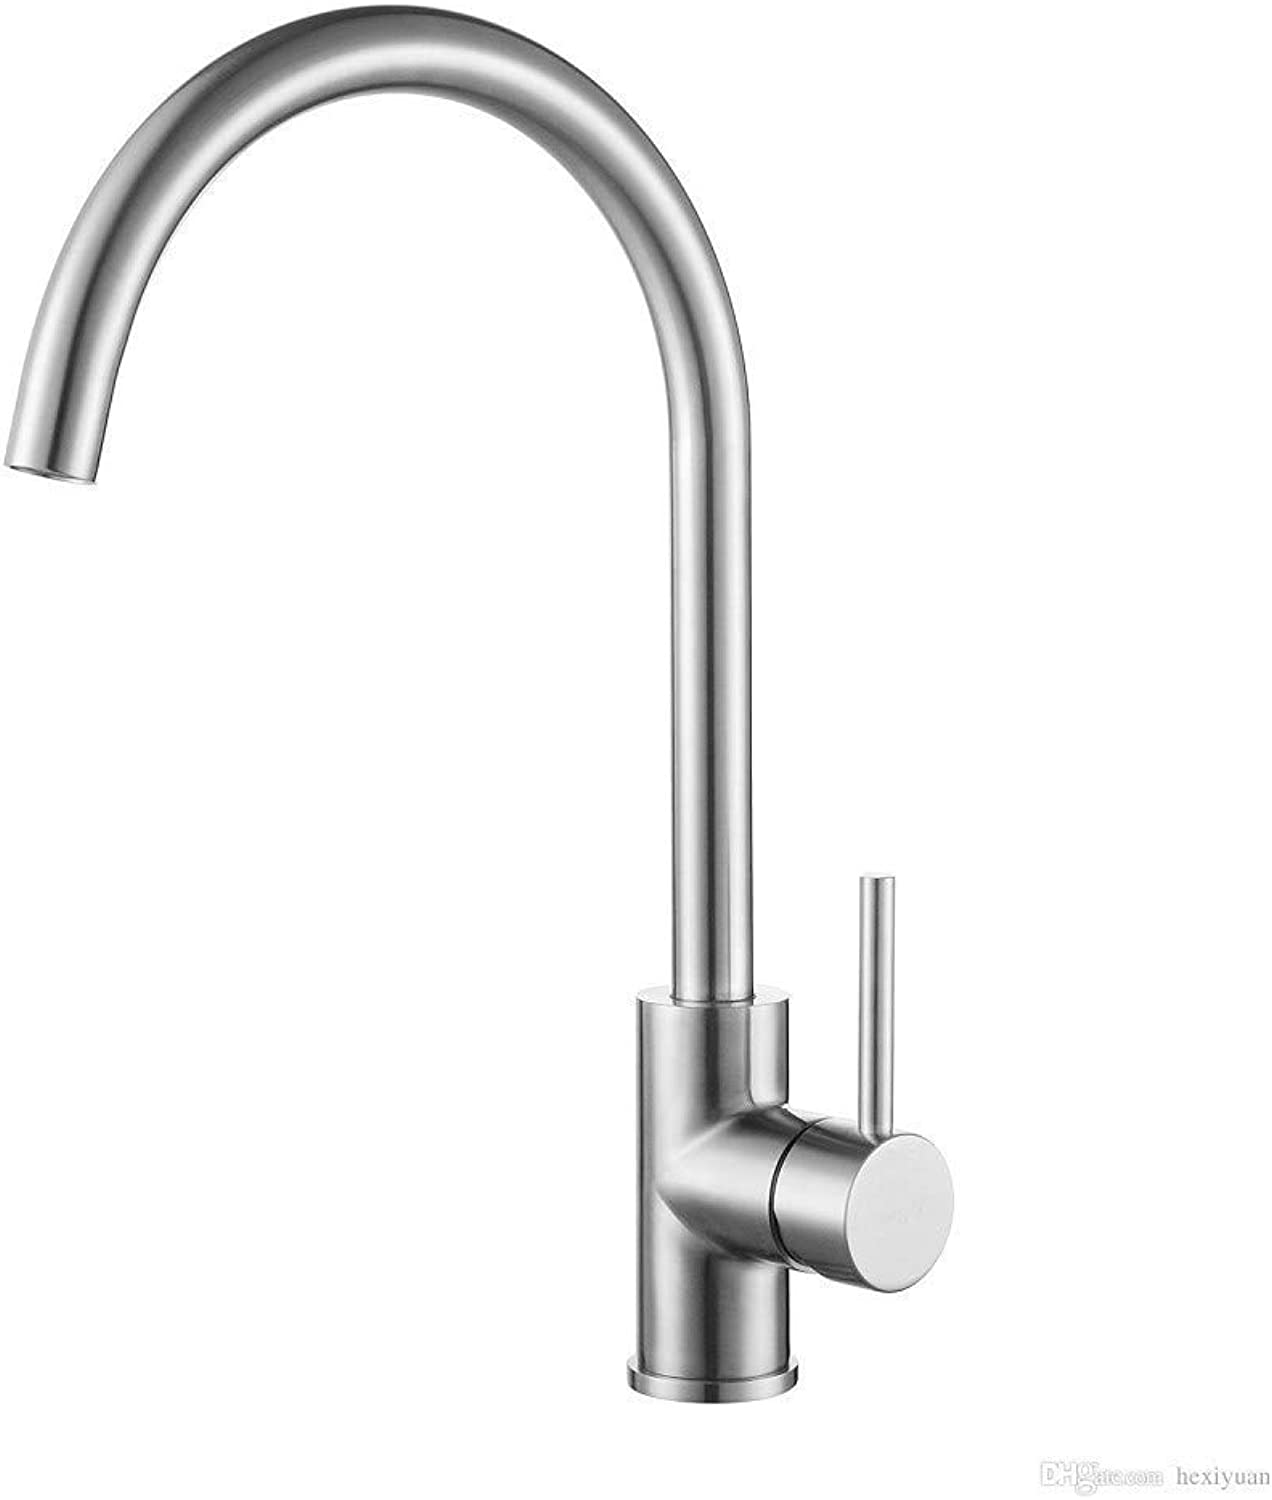 Oudan 304 Stainless Steel Sink Basin Sink Hot and Cold Faucet (color   -, Size   -)